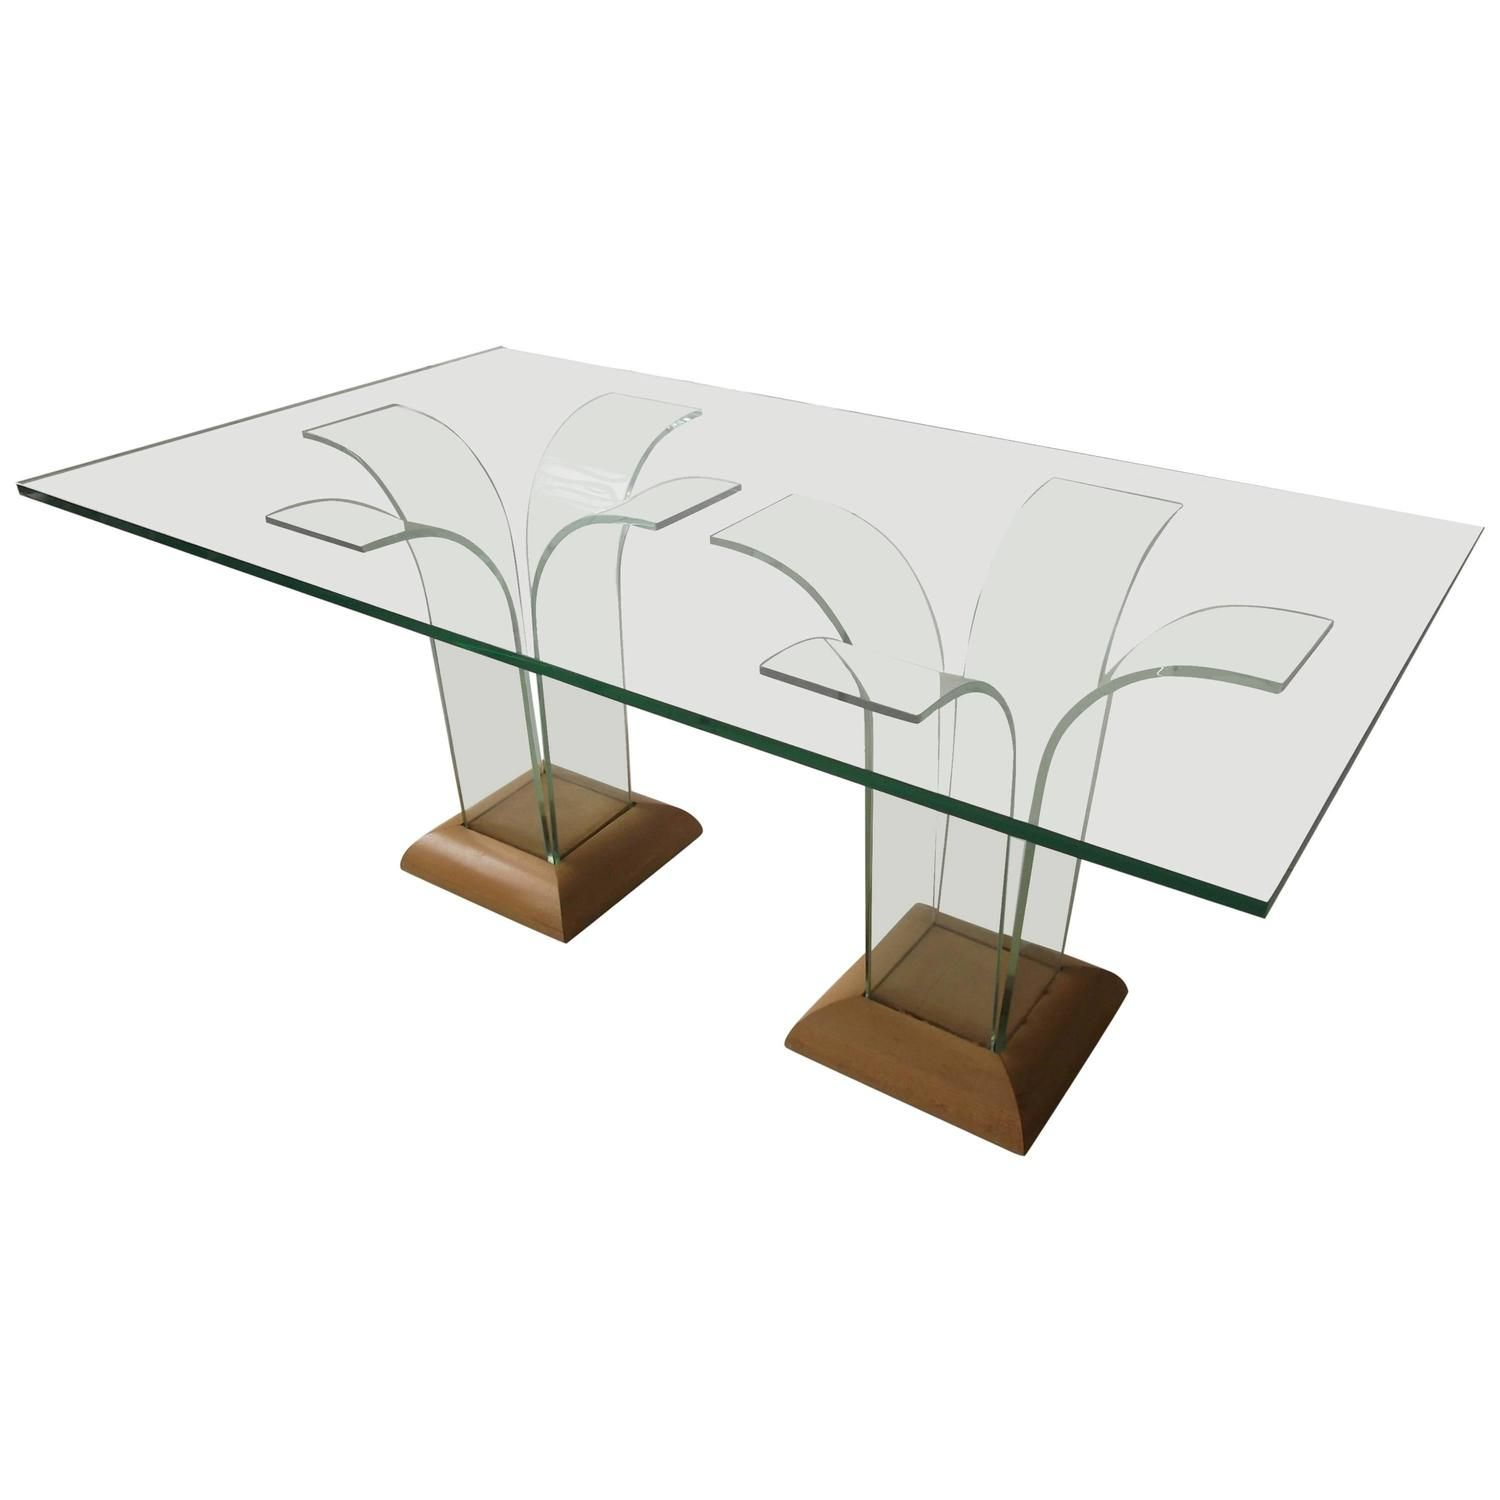 1940 Art Deco Bent Glass Dining Table by Ben Mildwoff for